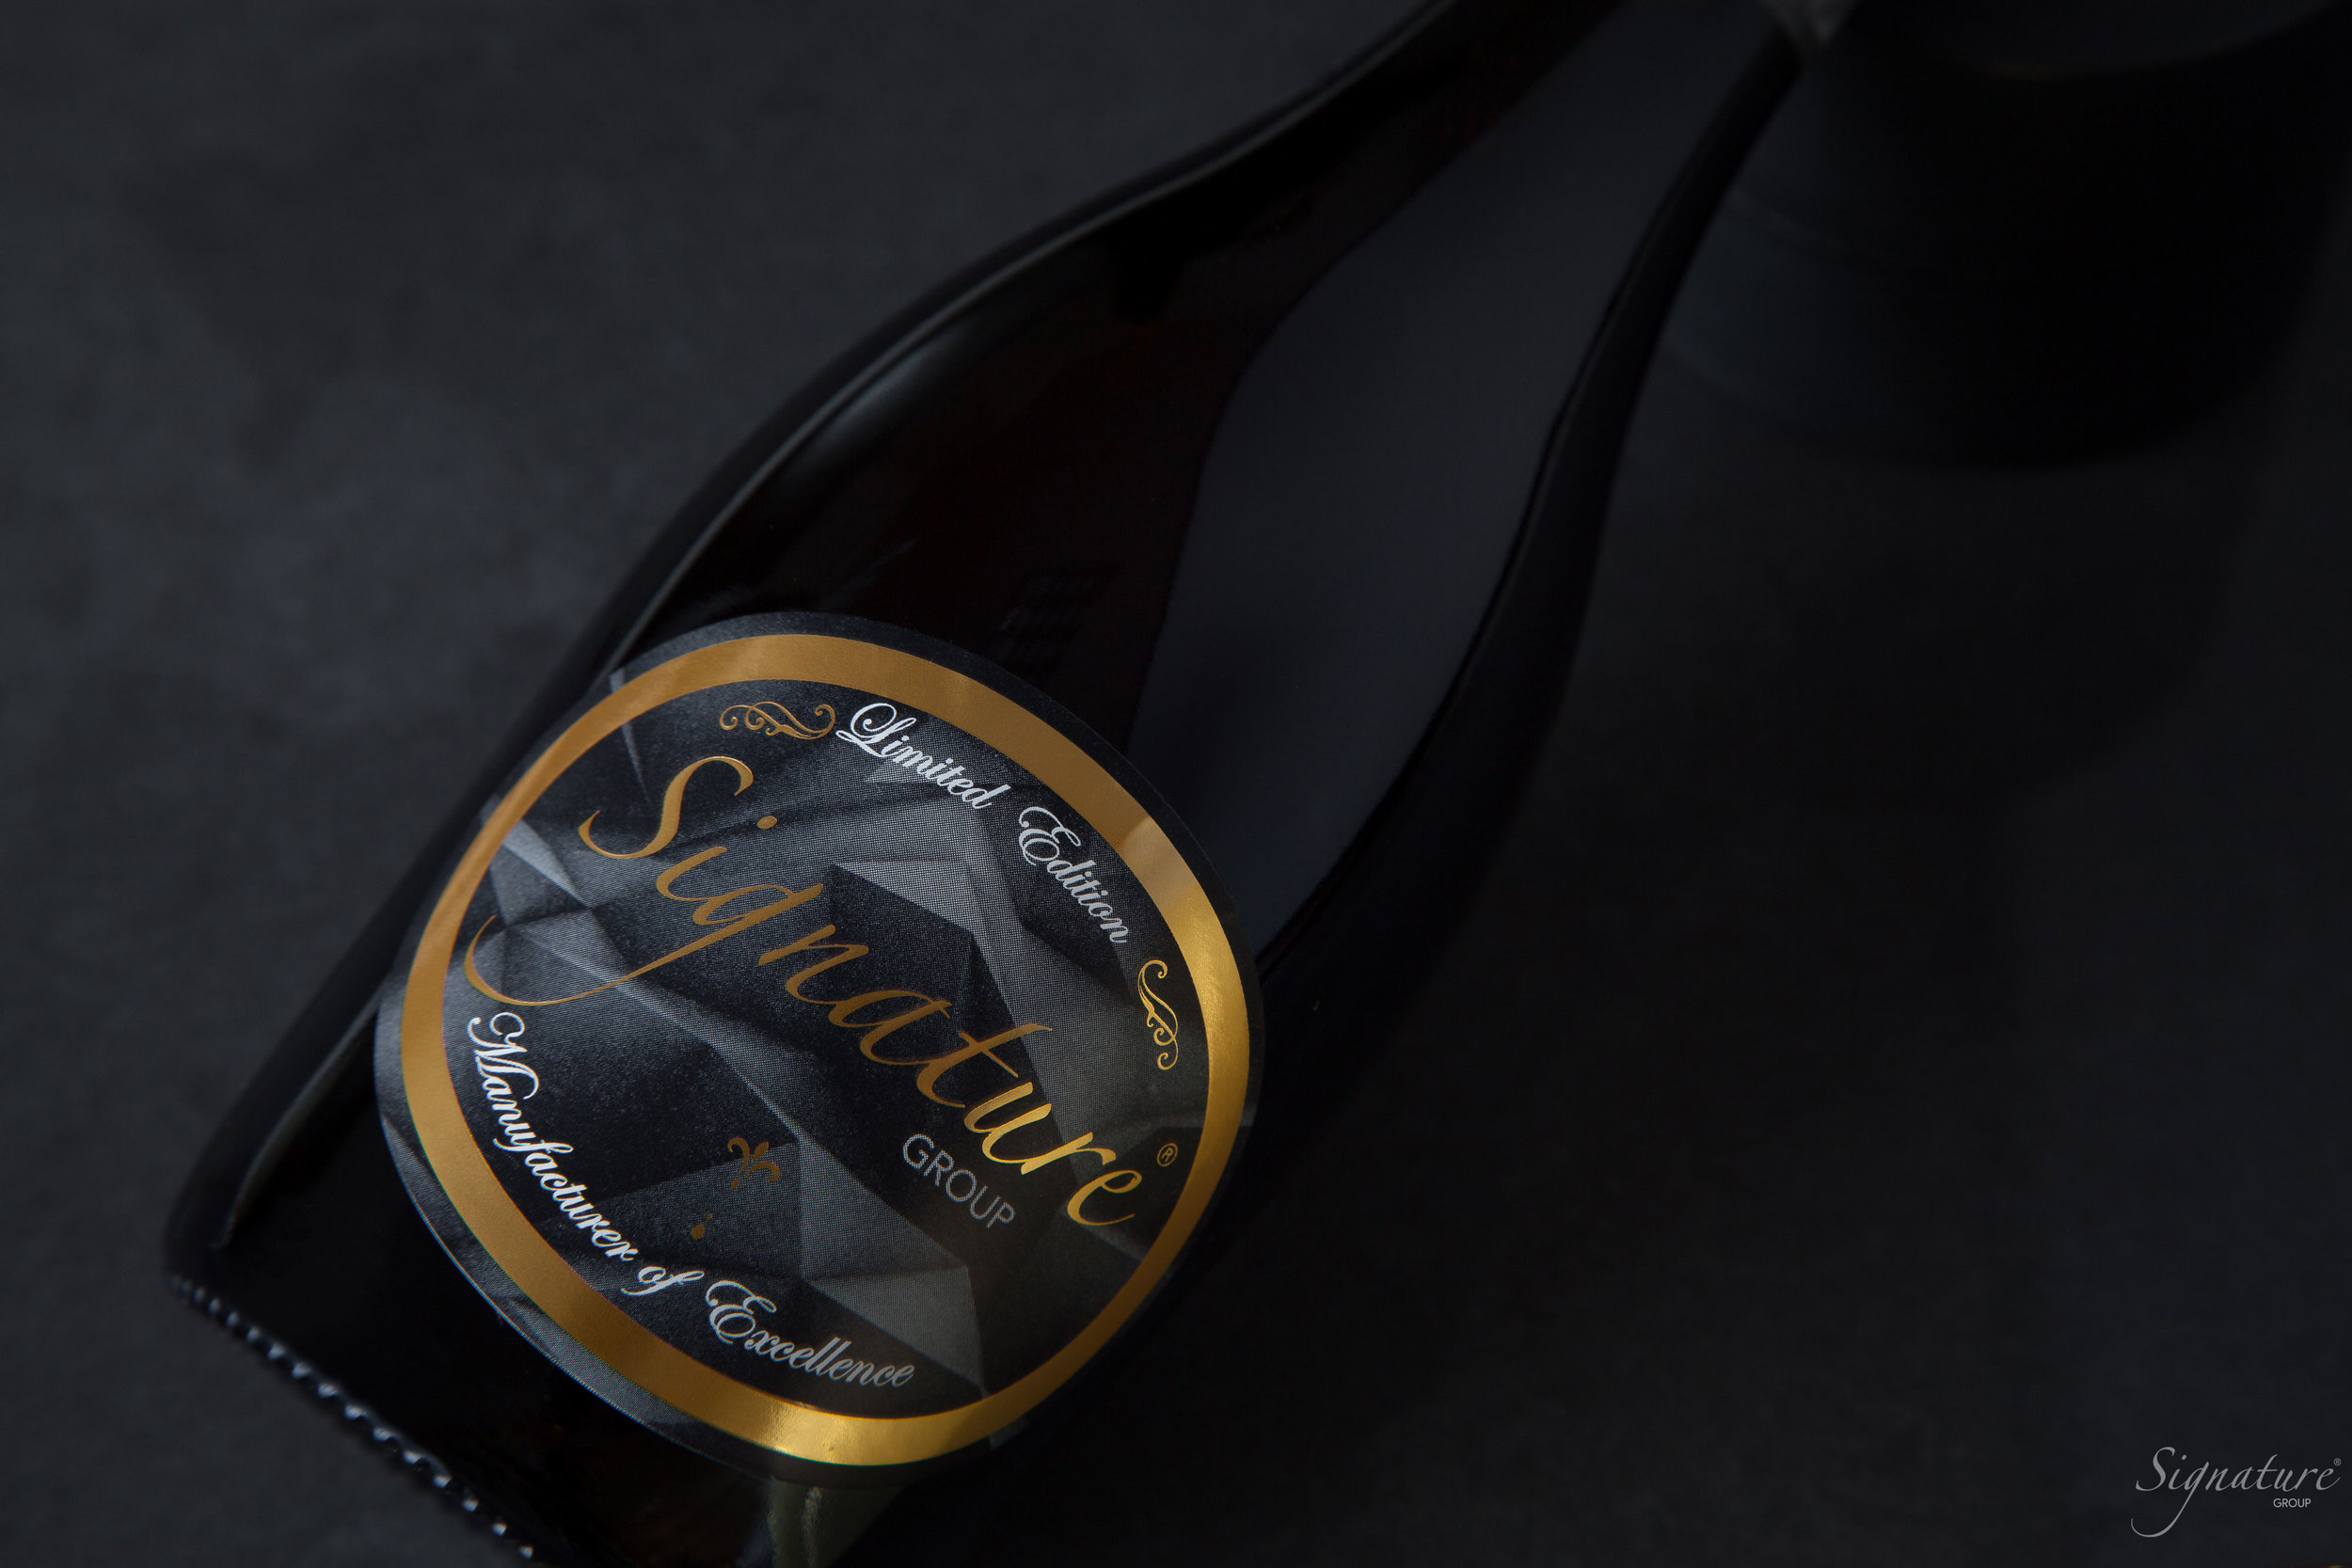 Signature Limited Edition Beer.